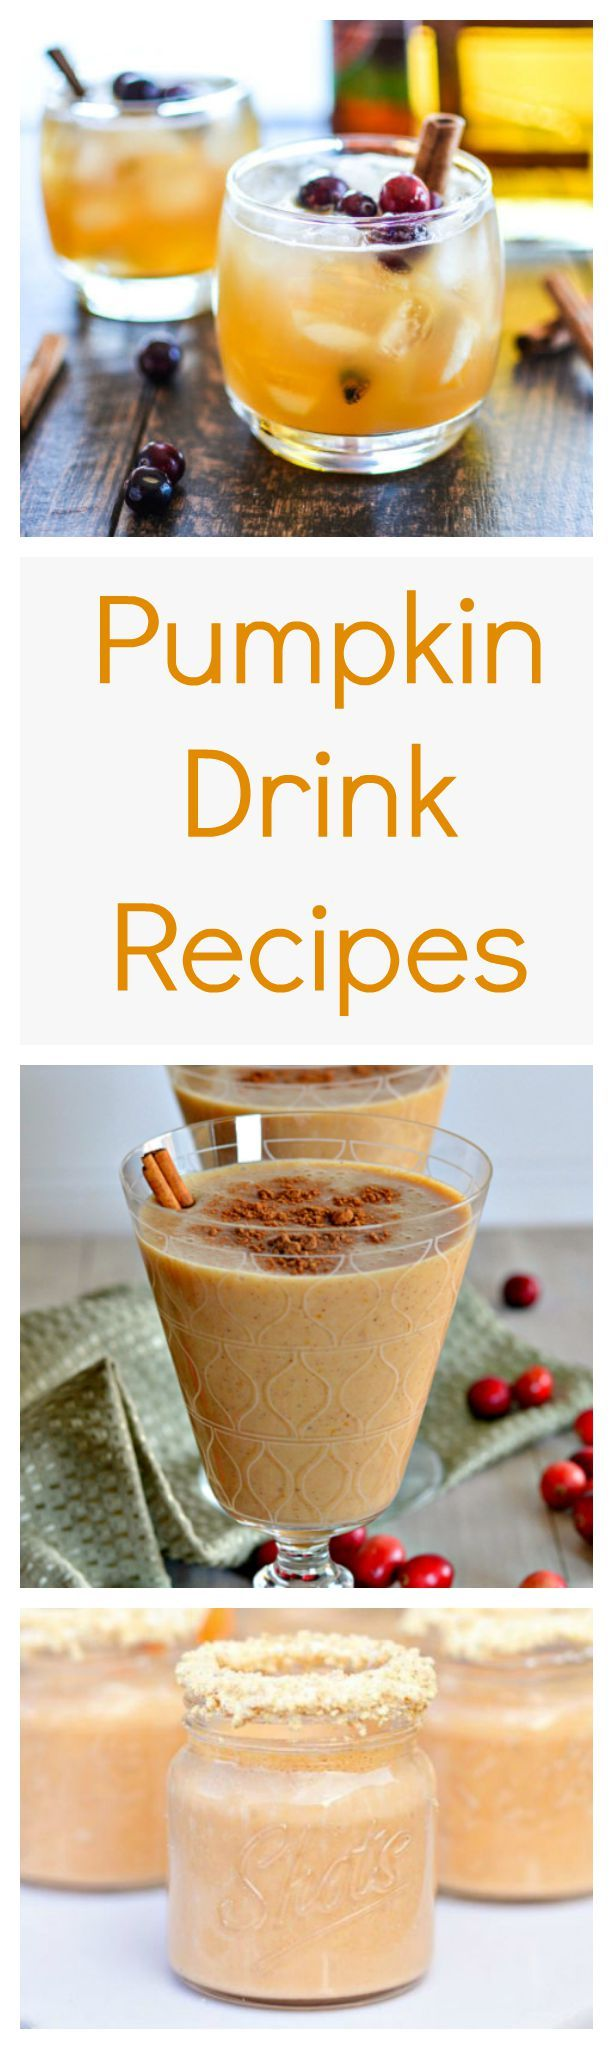 Don't even think about waiting until Halloween. The time to toss pumpkin in your blender is right now to enjoy these pumpkin drink recipes--some boozy and some without alcohol.